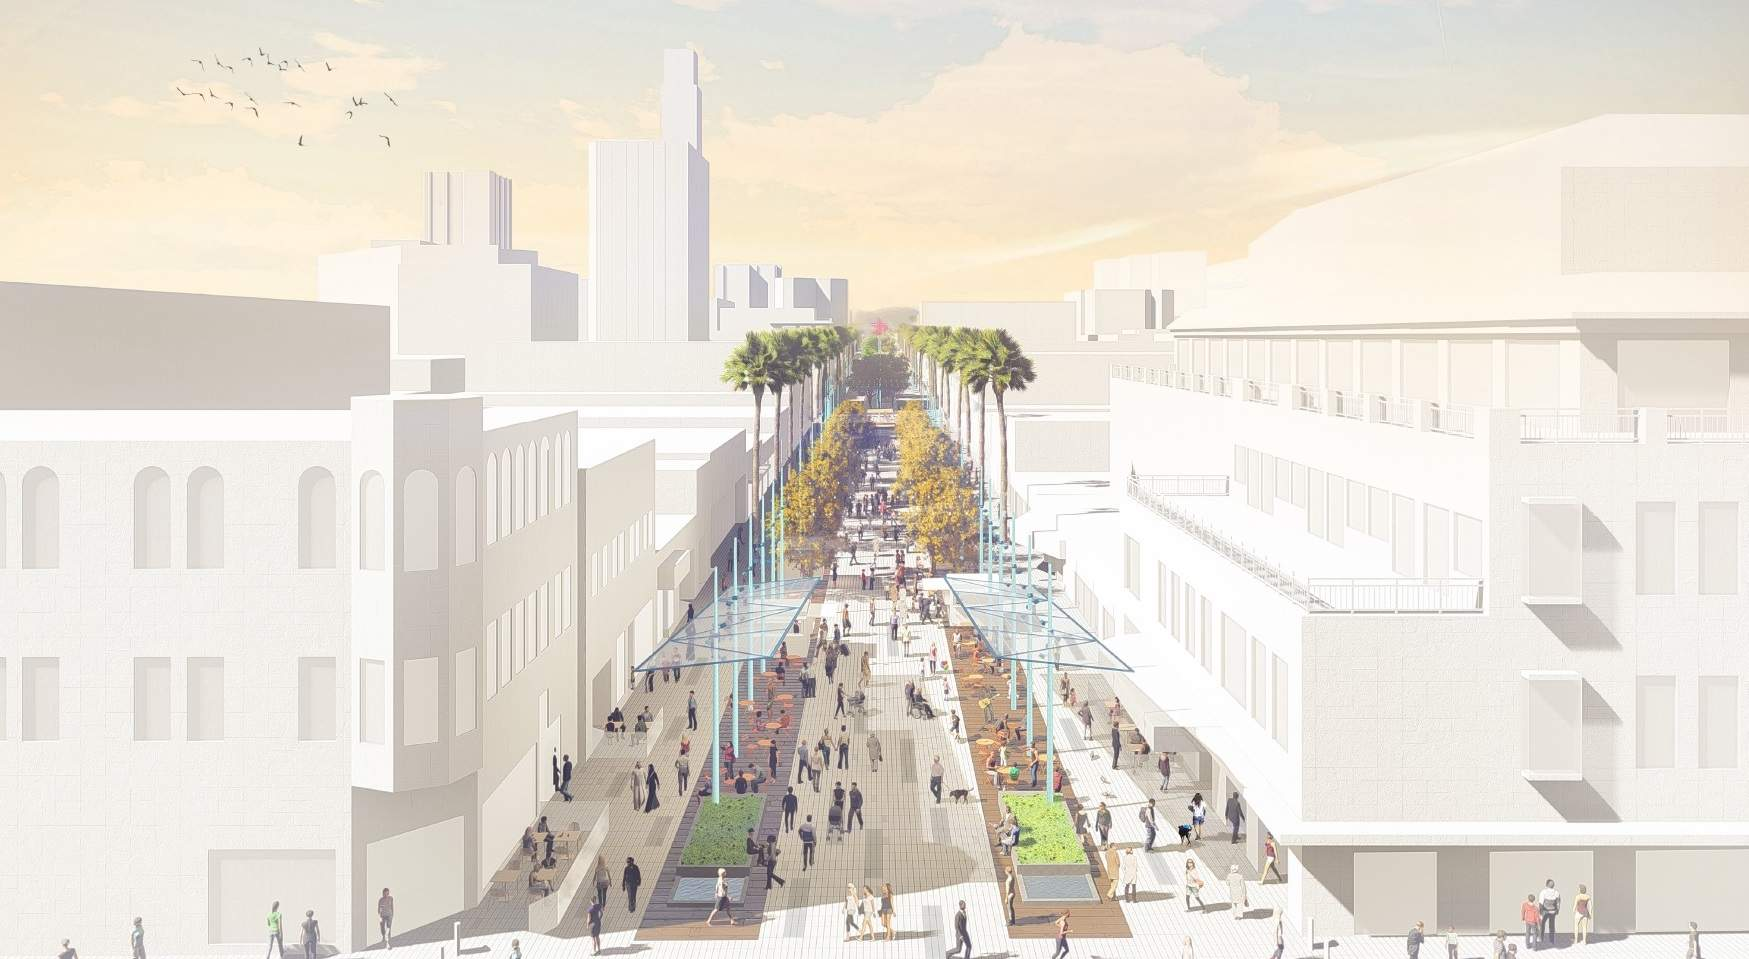 Rendering of a busy third street promenade